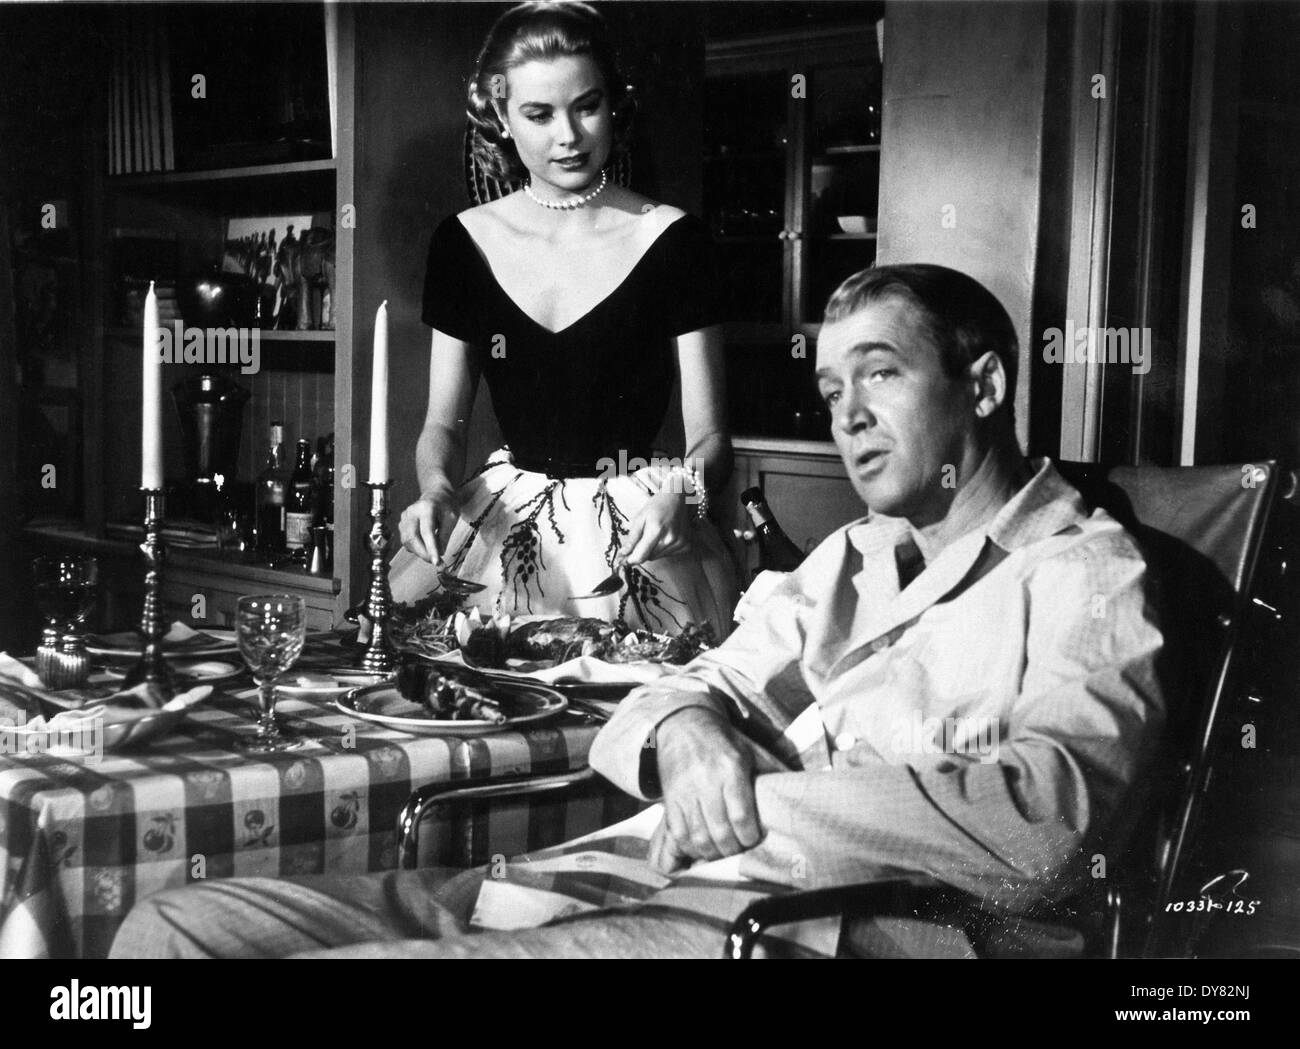 Rear Window - Grace Kelly , James Stewart - Director : Alfred Hitchcock - 1954 - Stock Image